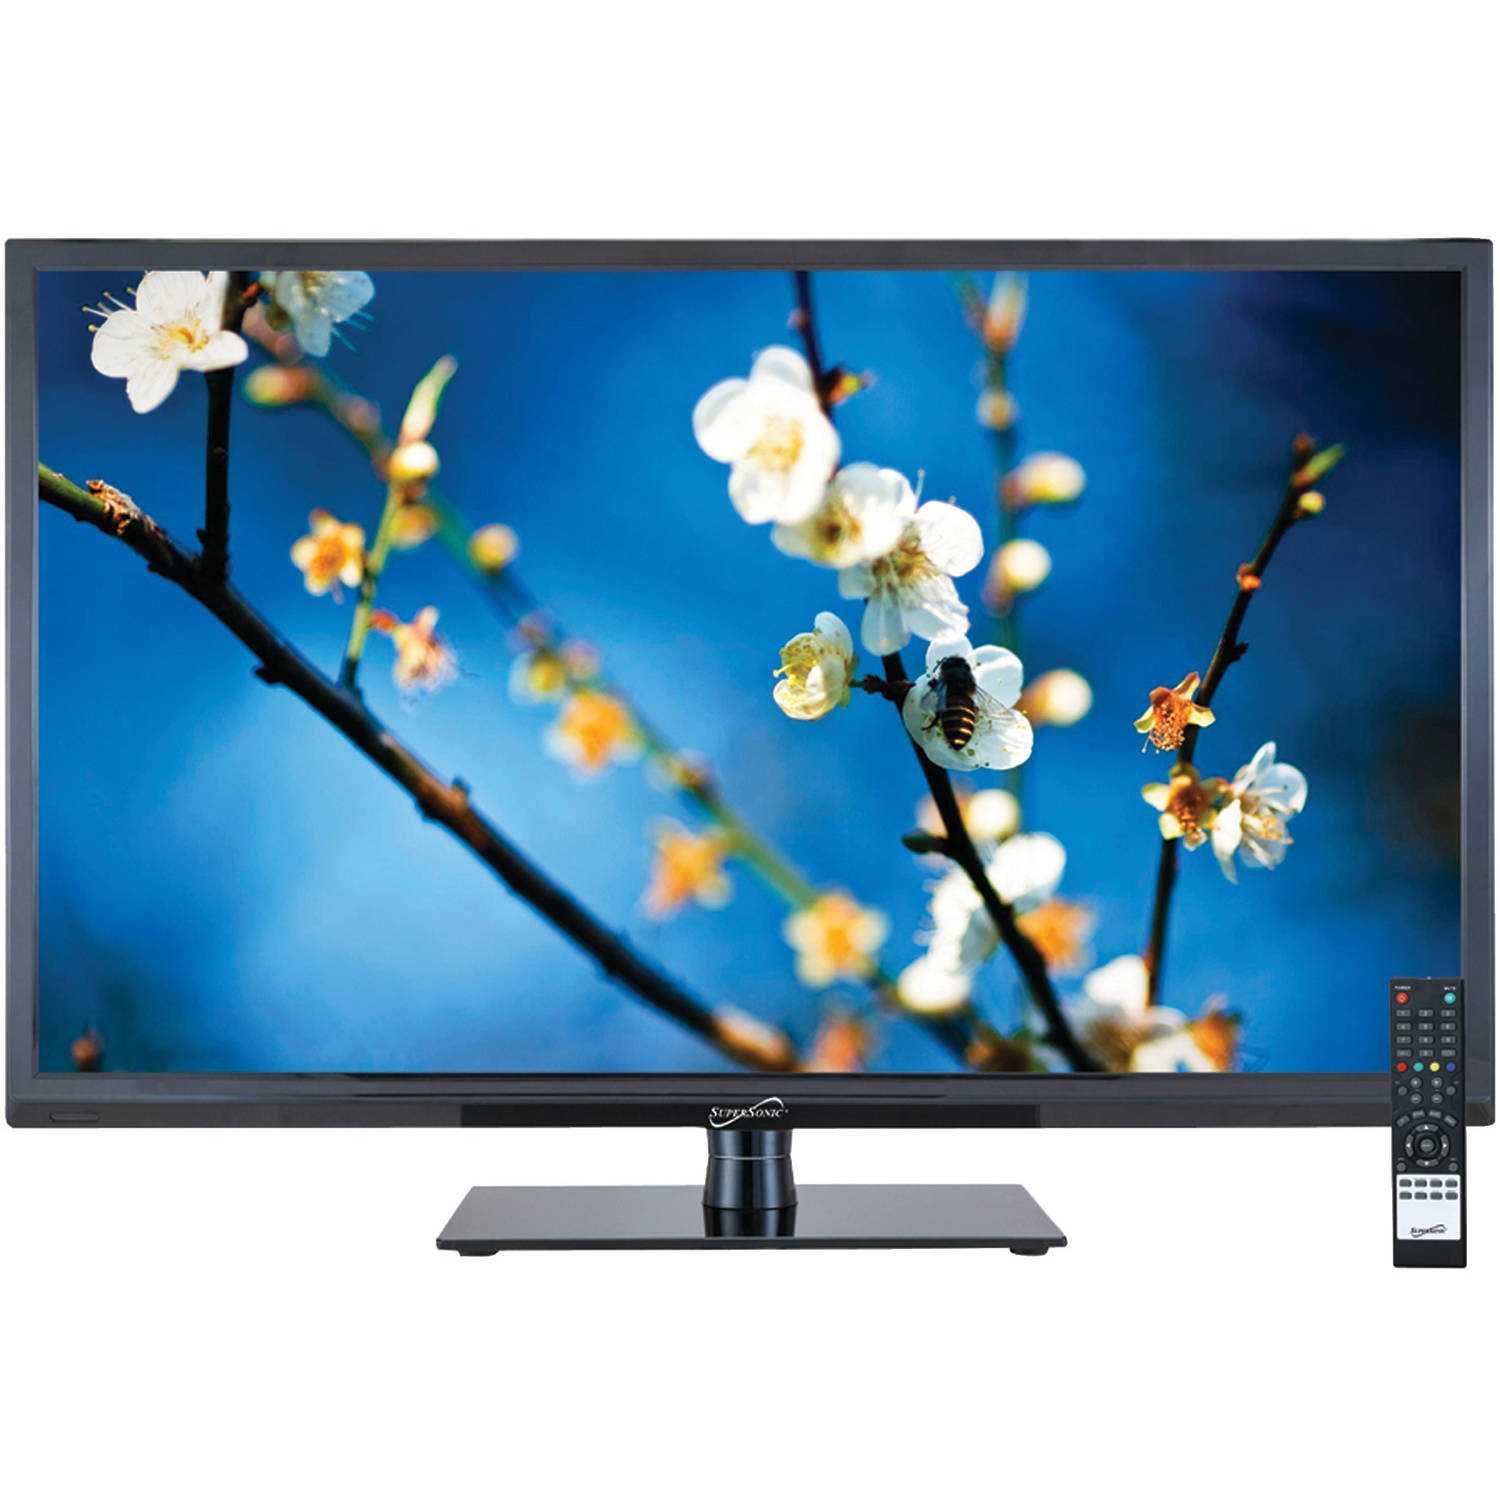 "Supersonic SC-3210 31.5"" 720p 12ms LED HDTV"